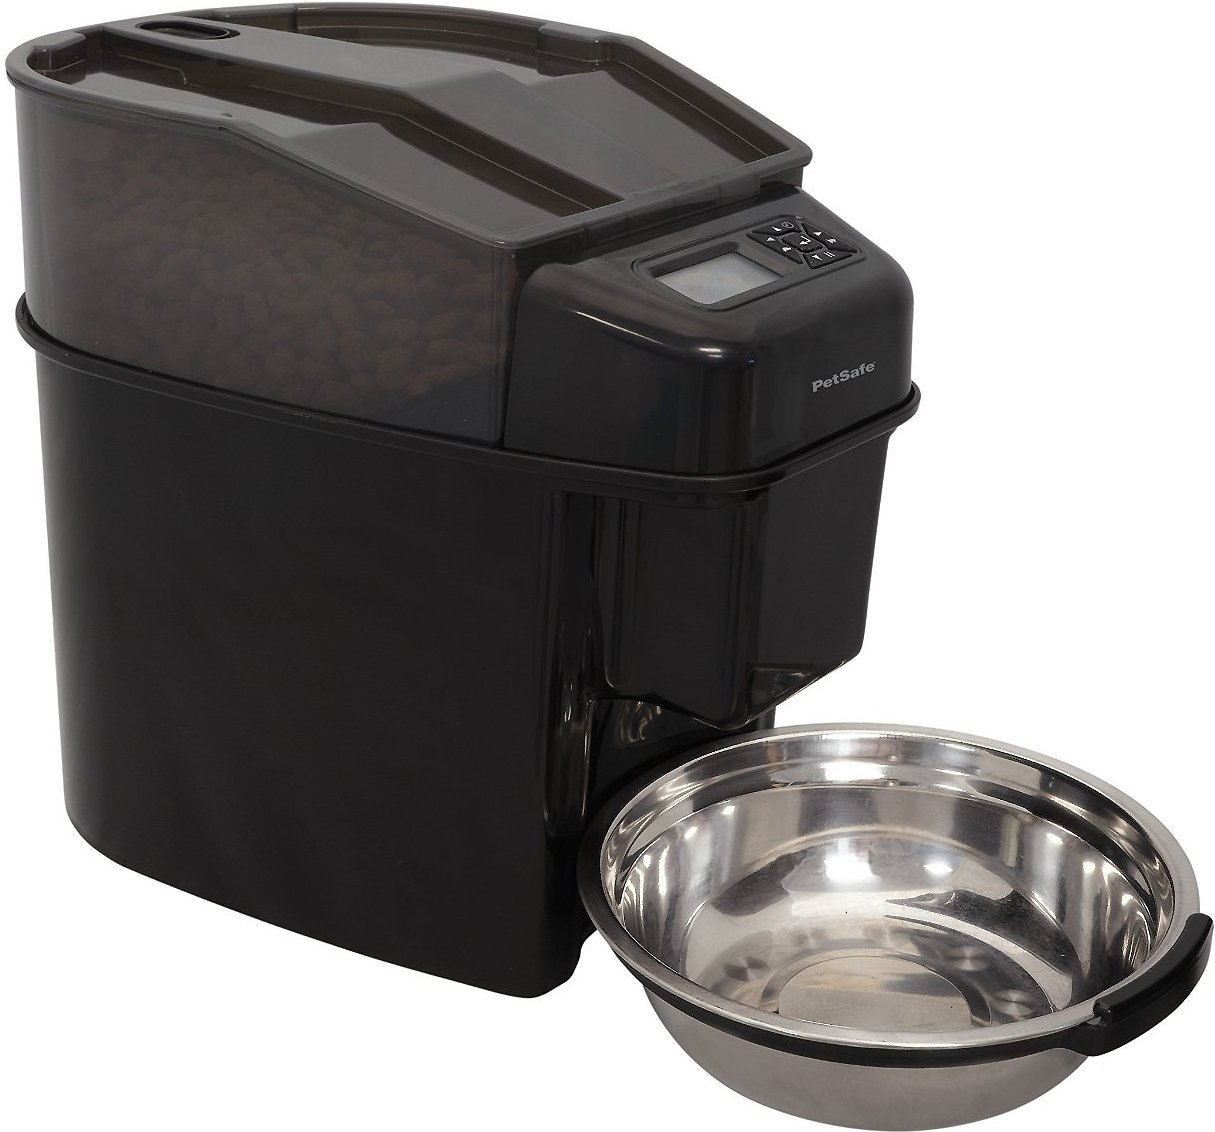 view pet vendorimagesauto larger supplies feeder portion perfect discontinued best mota for dinner dp cat and control dog with